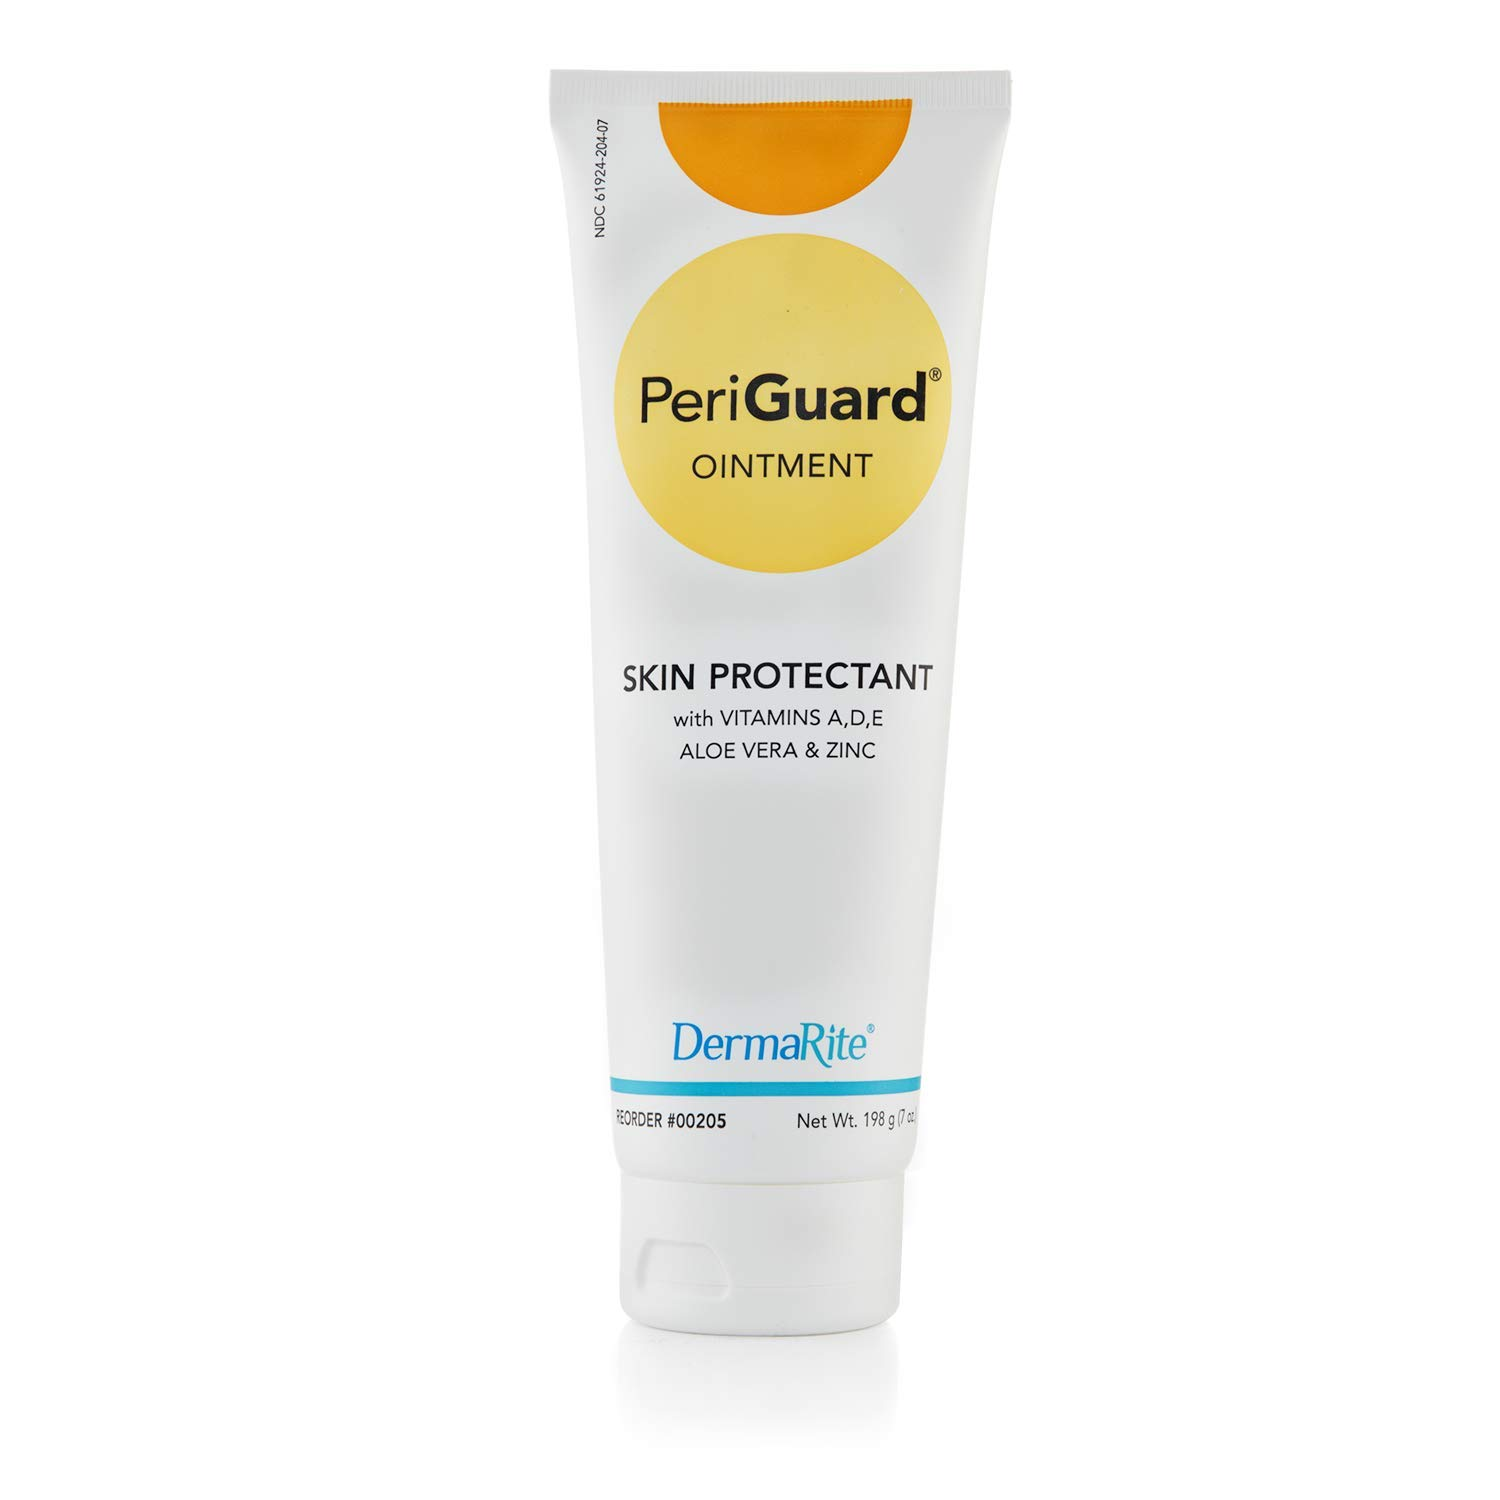 Dermarite PeriGuard Antimicrobial Skin Protectant Ointment, 2 Pack - 7 oz Tube - with Vitamins A, D, E, Aloe Vera and Zinc - Clear Moisture Barrier Cream